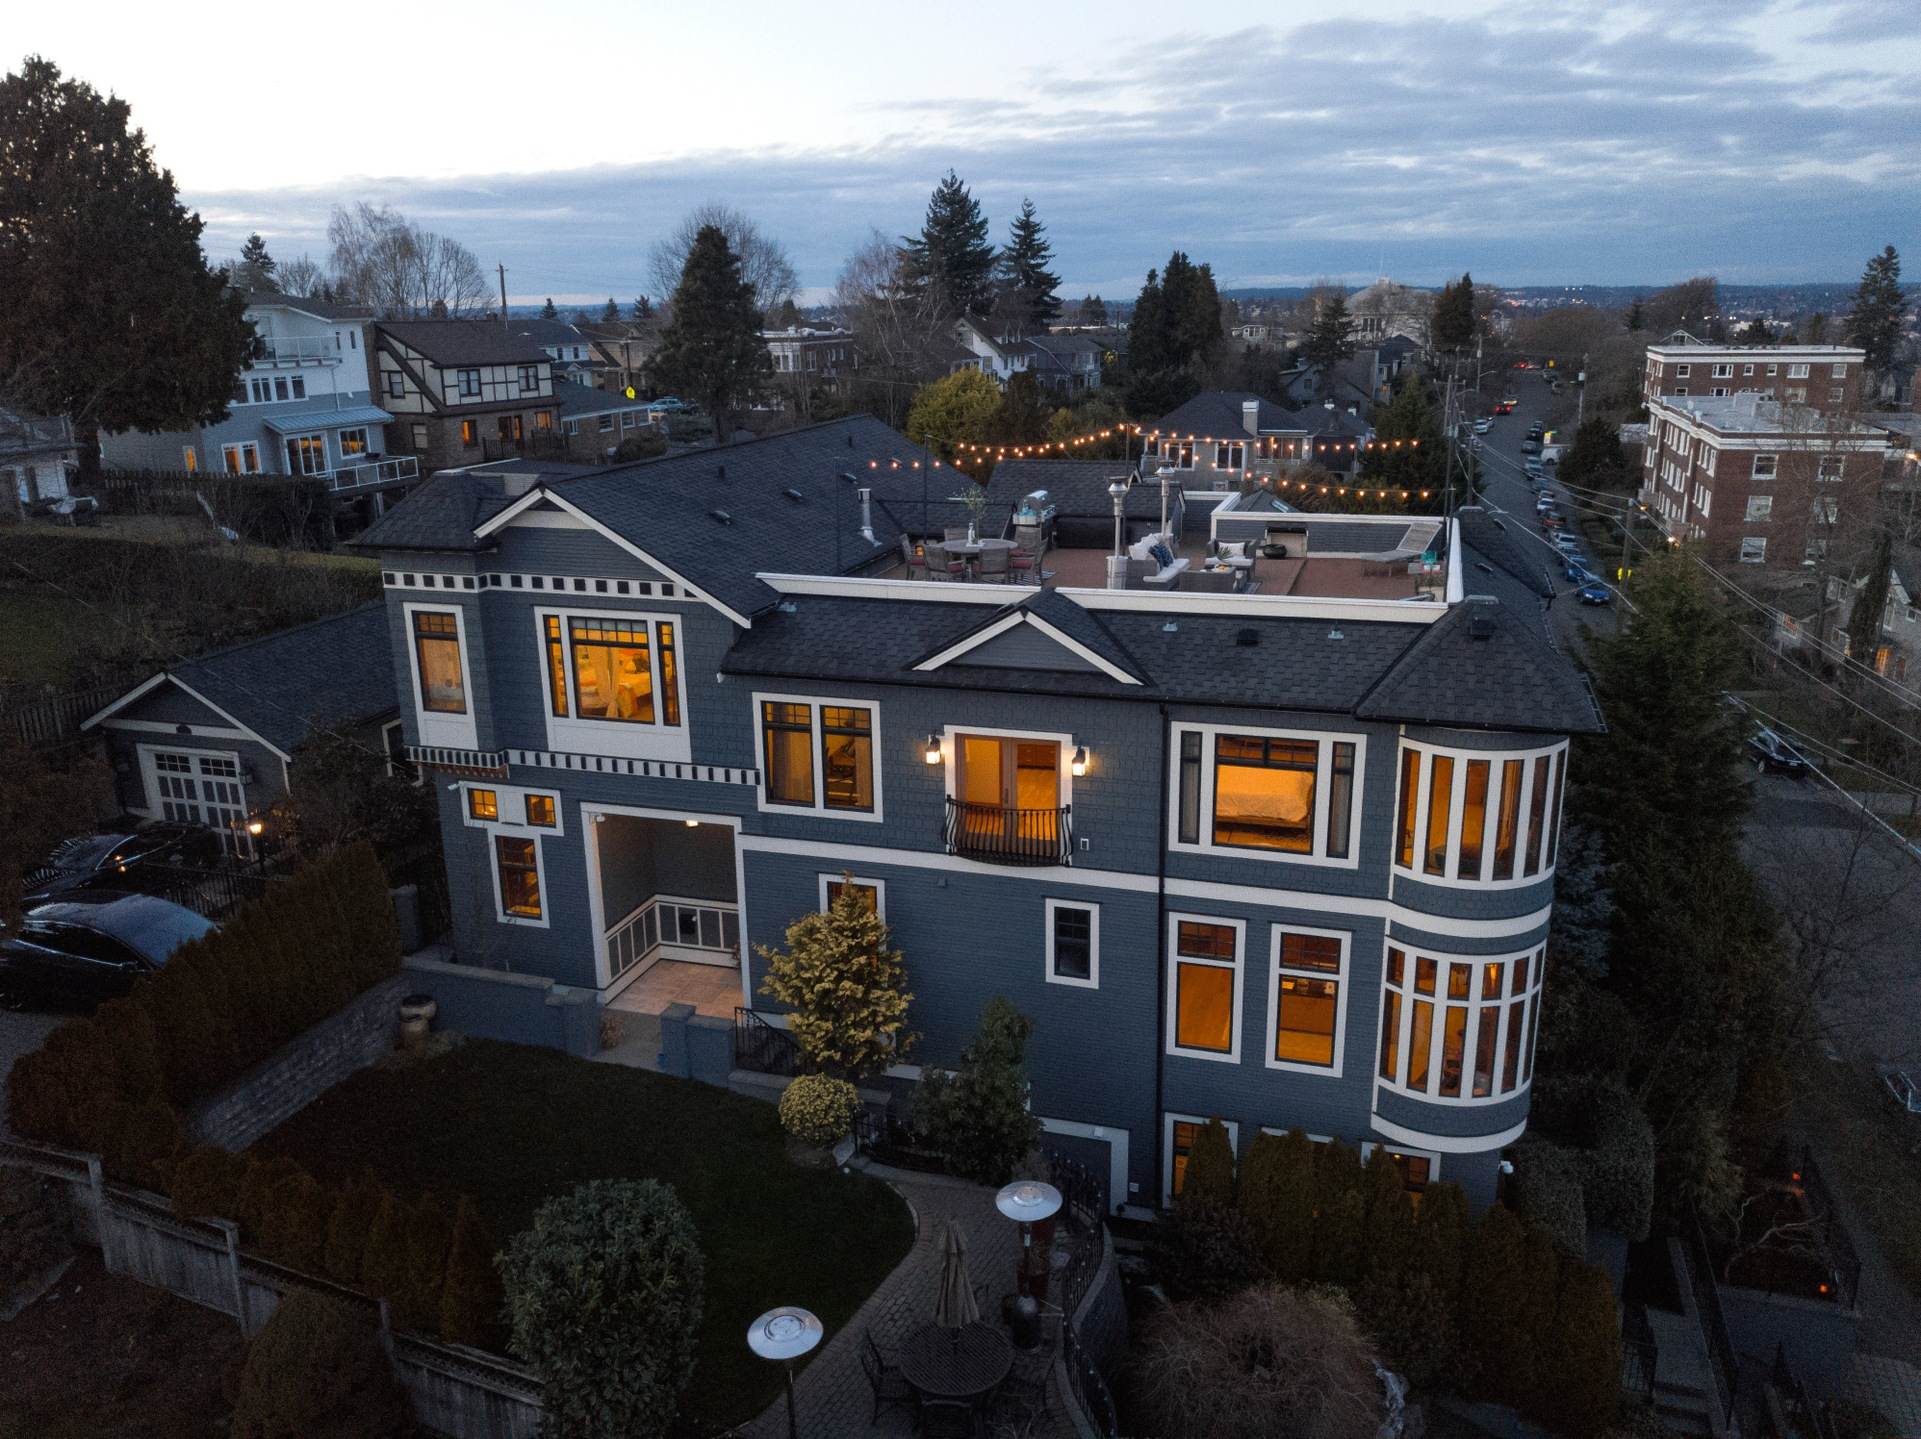 Sometimes I just can't believe that homes like this even exist in this world. This Queen Anne home has seamlessly combined city living with resort like amenities. For starters, think an expansive roof top deck with an 180-degree panorama view... I know, I know, I'll give you a second to catch your breath. On top of all that, there is a media room, an elevator, an indoor pool, hot tub, sauna and more. Not too shabby, eh? The 7,750 square foot home has 5 bed and 5 baths and has a price tag of $6,295,000. Check RedFin for more information on this listing, MLS #1255285. (Image courtesy of RedFin.com).